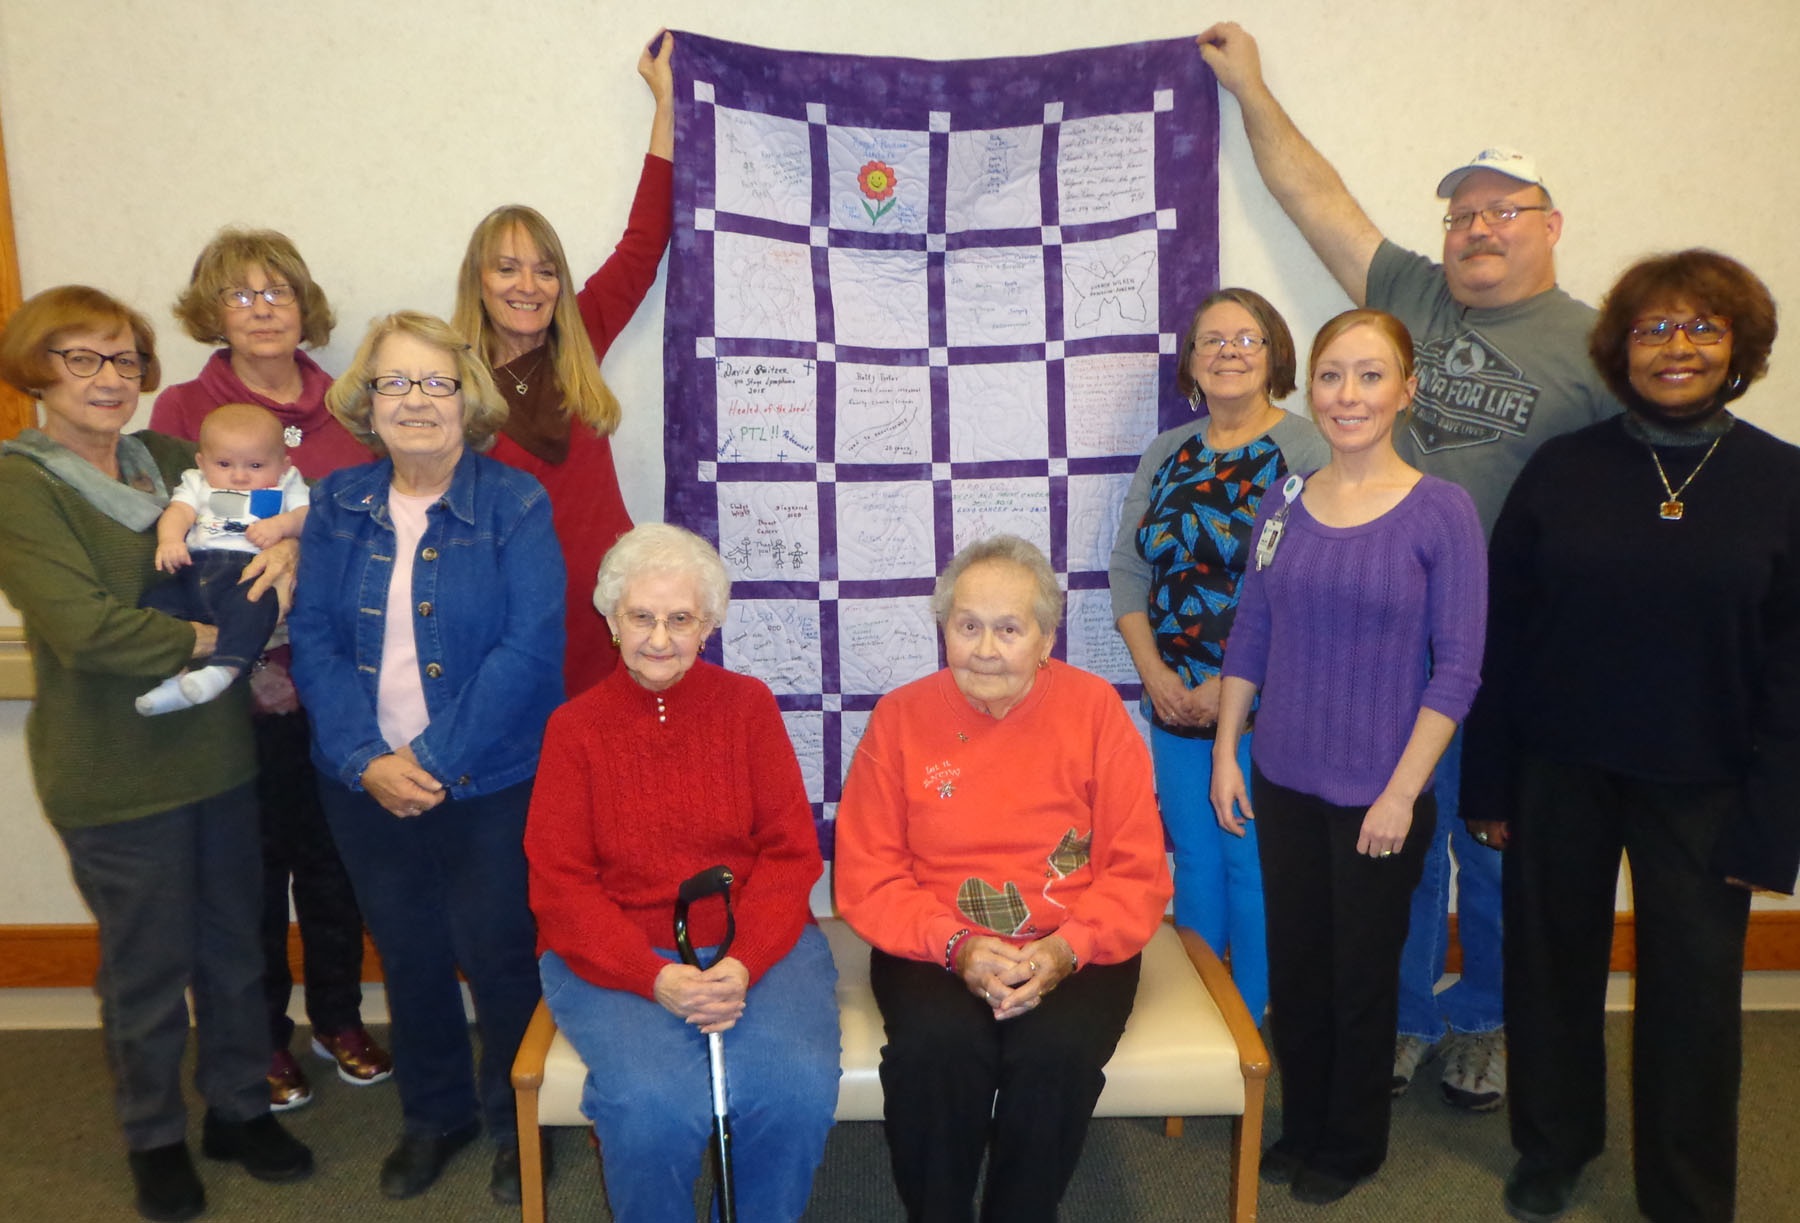 'Hope Quilt' to be Displayed at Horizon Health